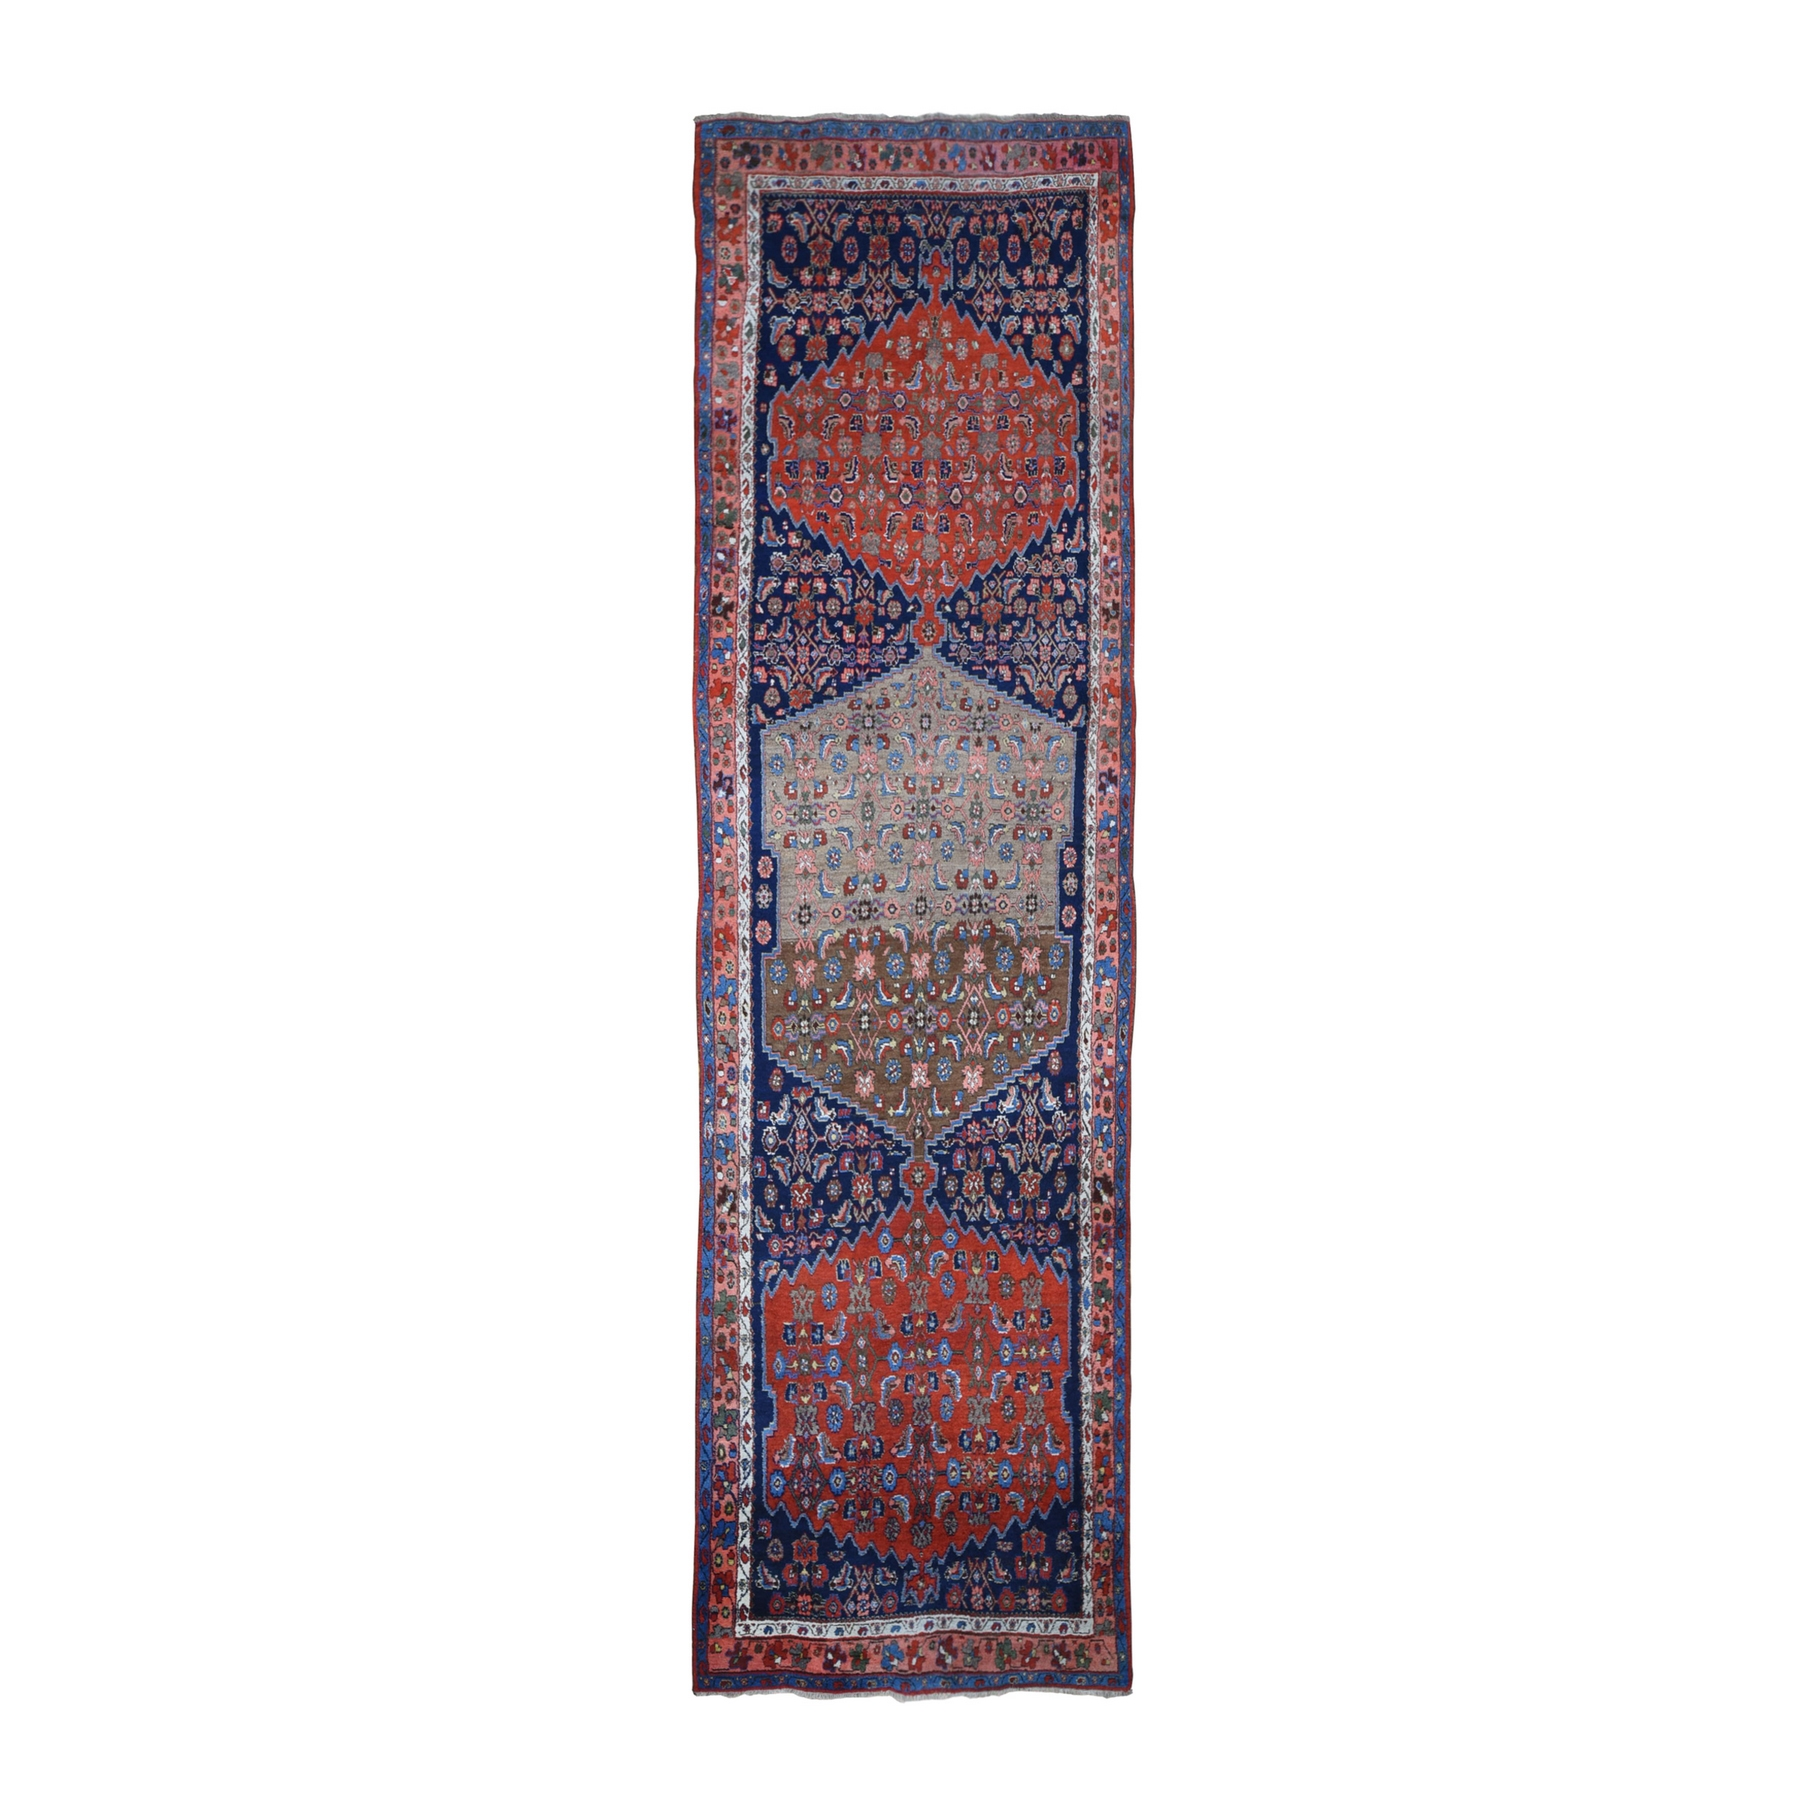 Antique Collection Hand Knotted Blue Rug No: 1133188